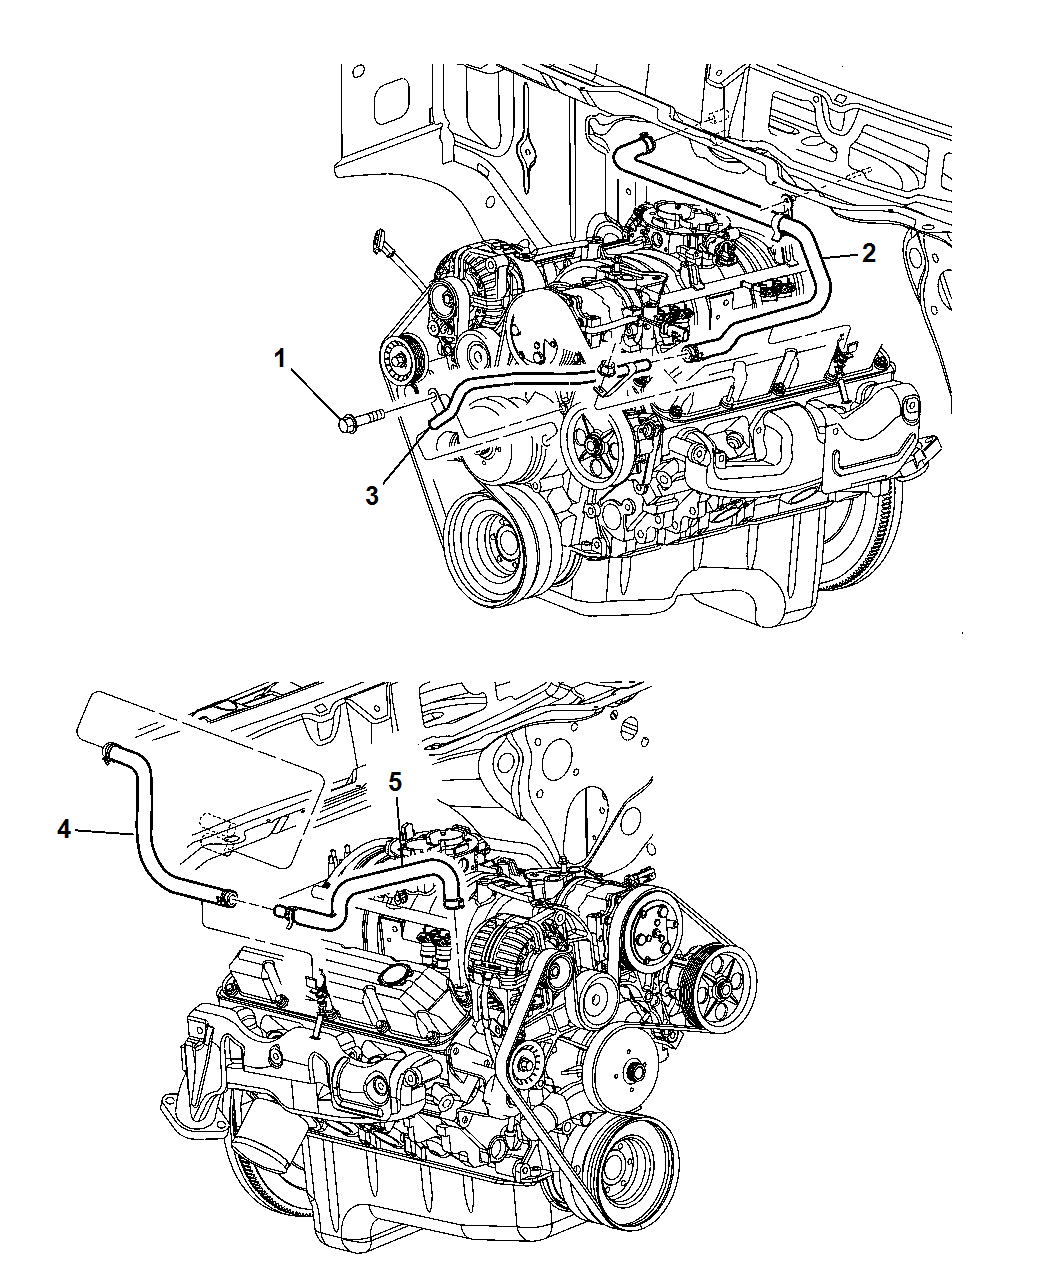 2003 dodge ram 1500 engine diagram - wiring diagram schematic advice-make -  advice-make.aliceviola.it  aliceviola.it